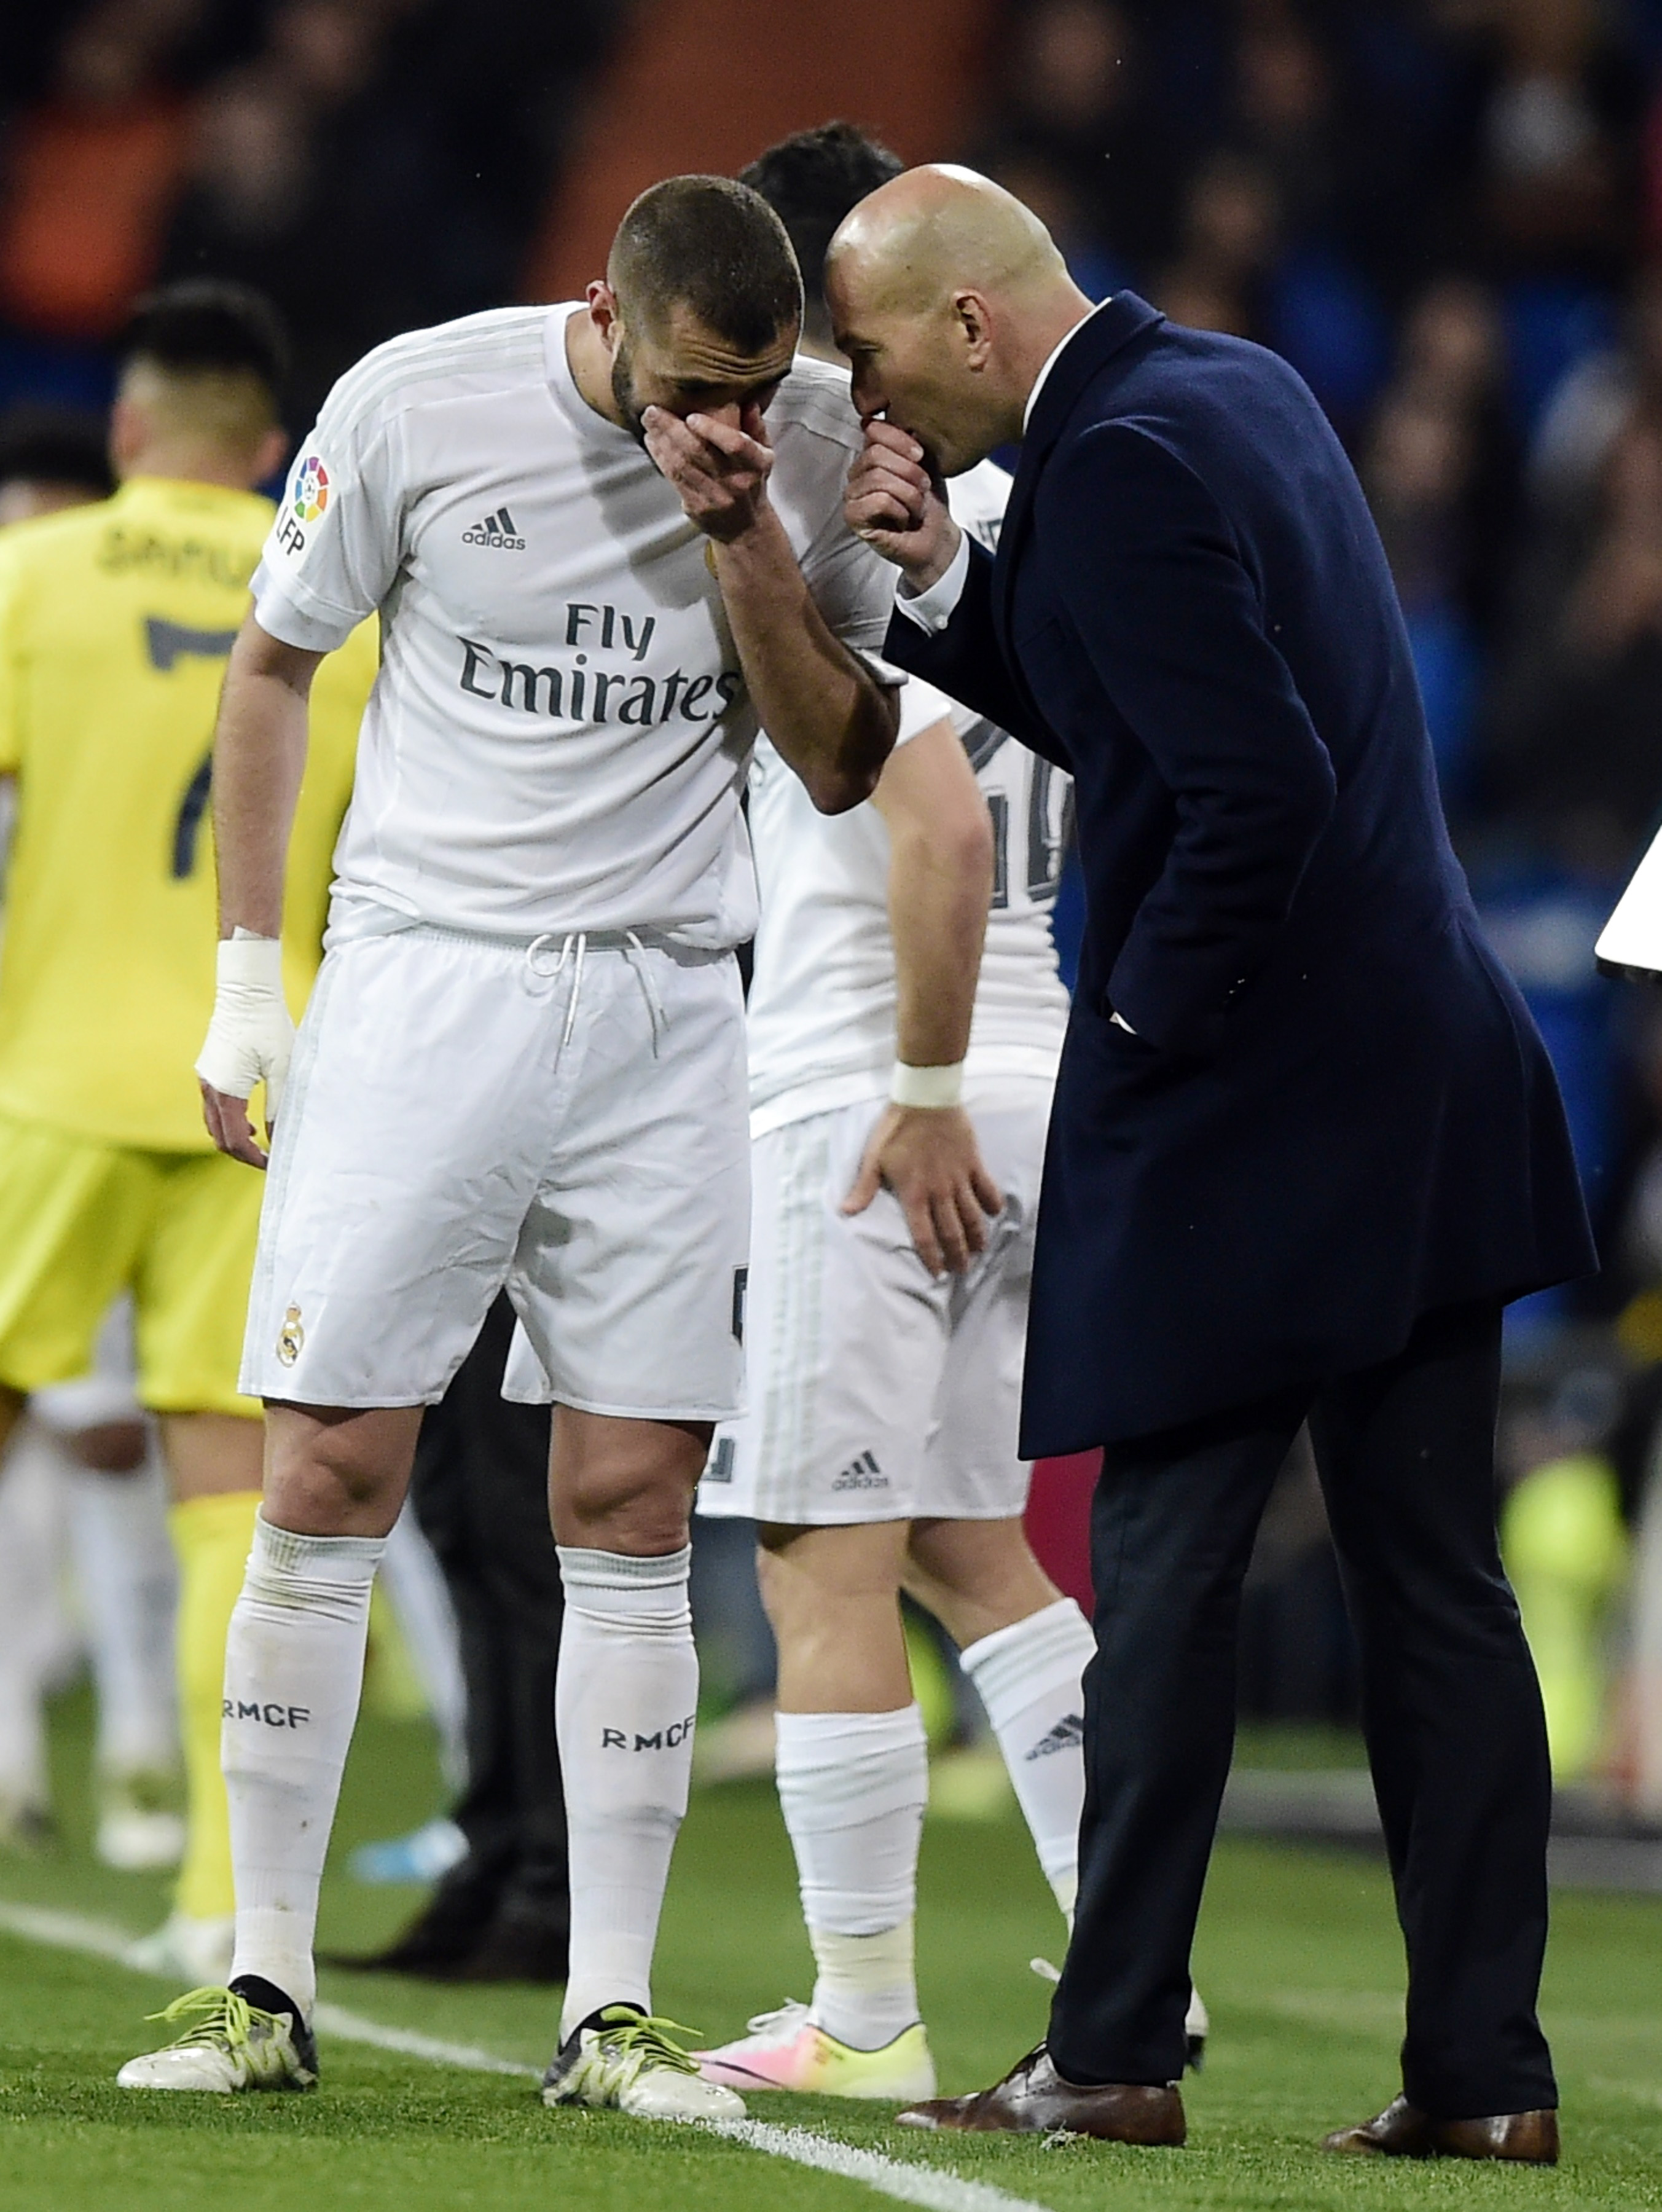 Real Madrid's French forward Karim Benzema (L) speaks with Real Madrid's French coach Zinedine Zidane during the Spanish league football match Real Madrid CF vs Villarreal CF at the Santiago Bernabeu stadium in Madrid on April 20, 2016. / AFP PHOTO / JAVIER SORIANO